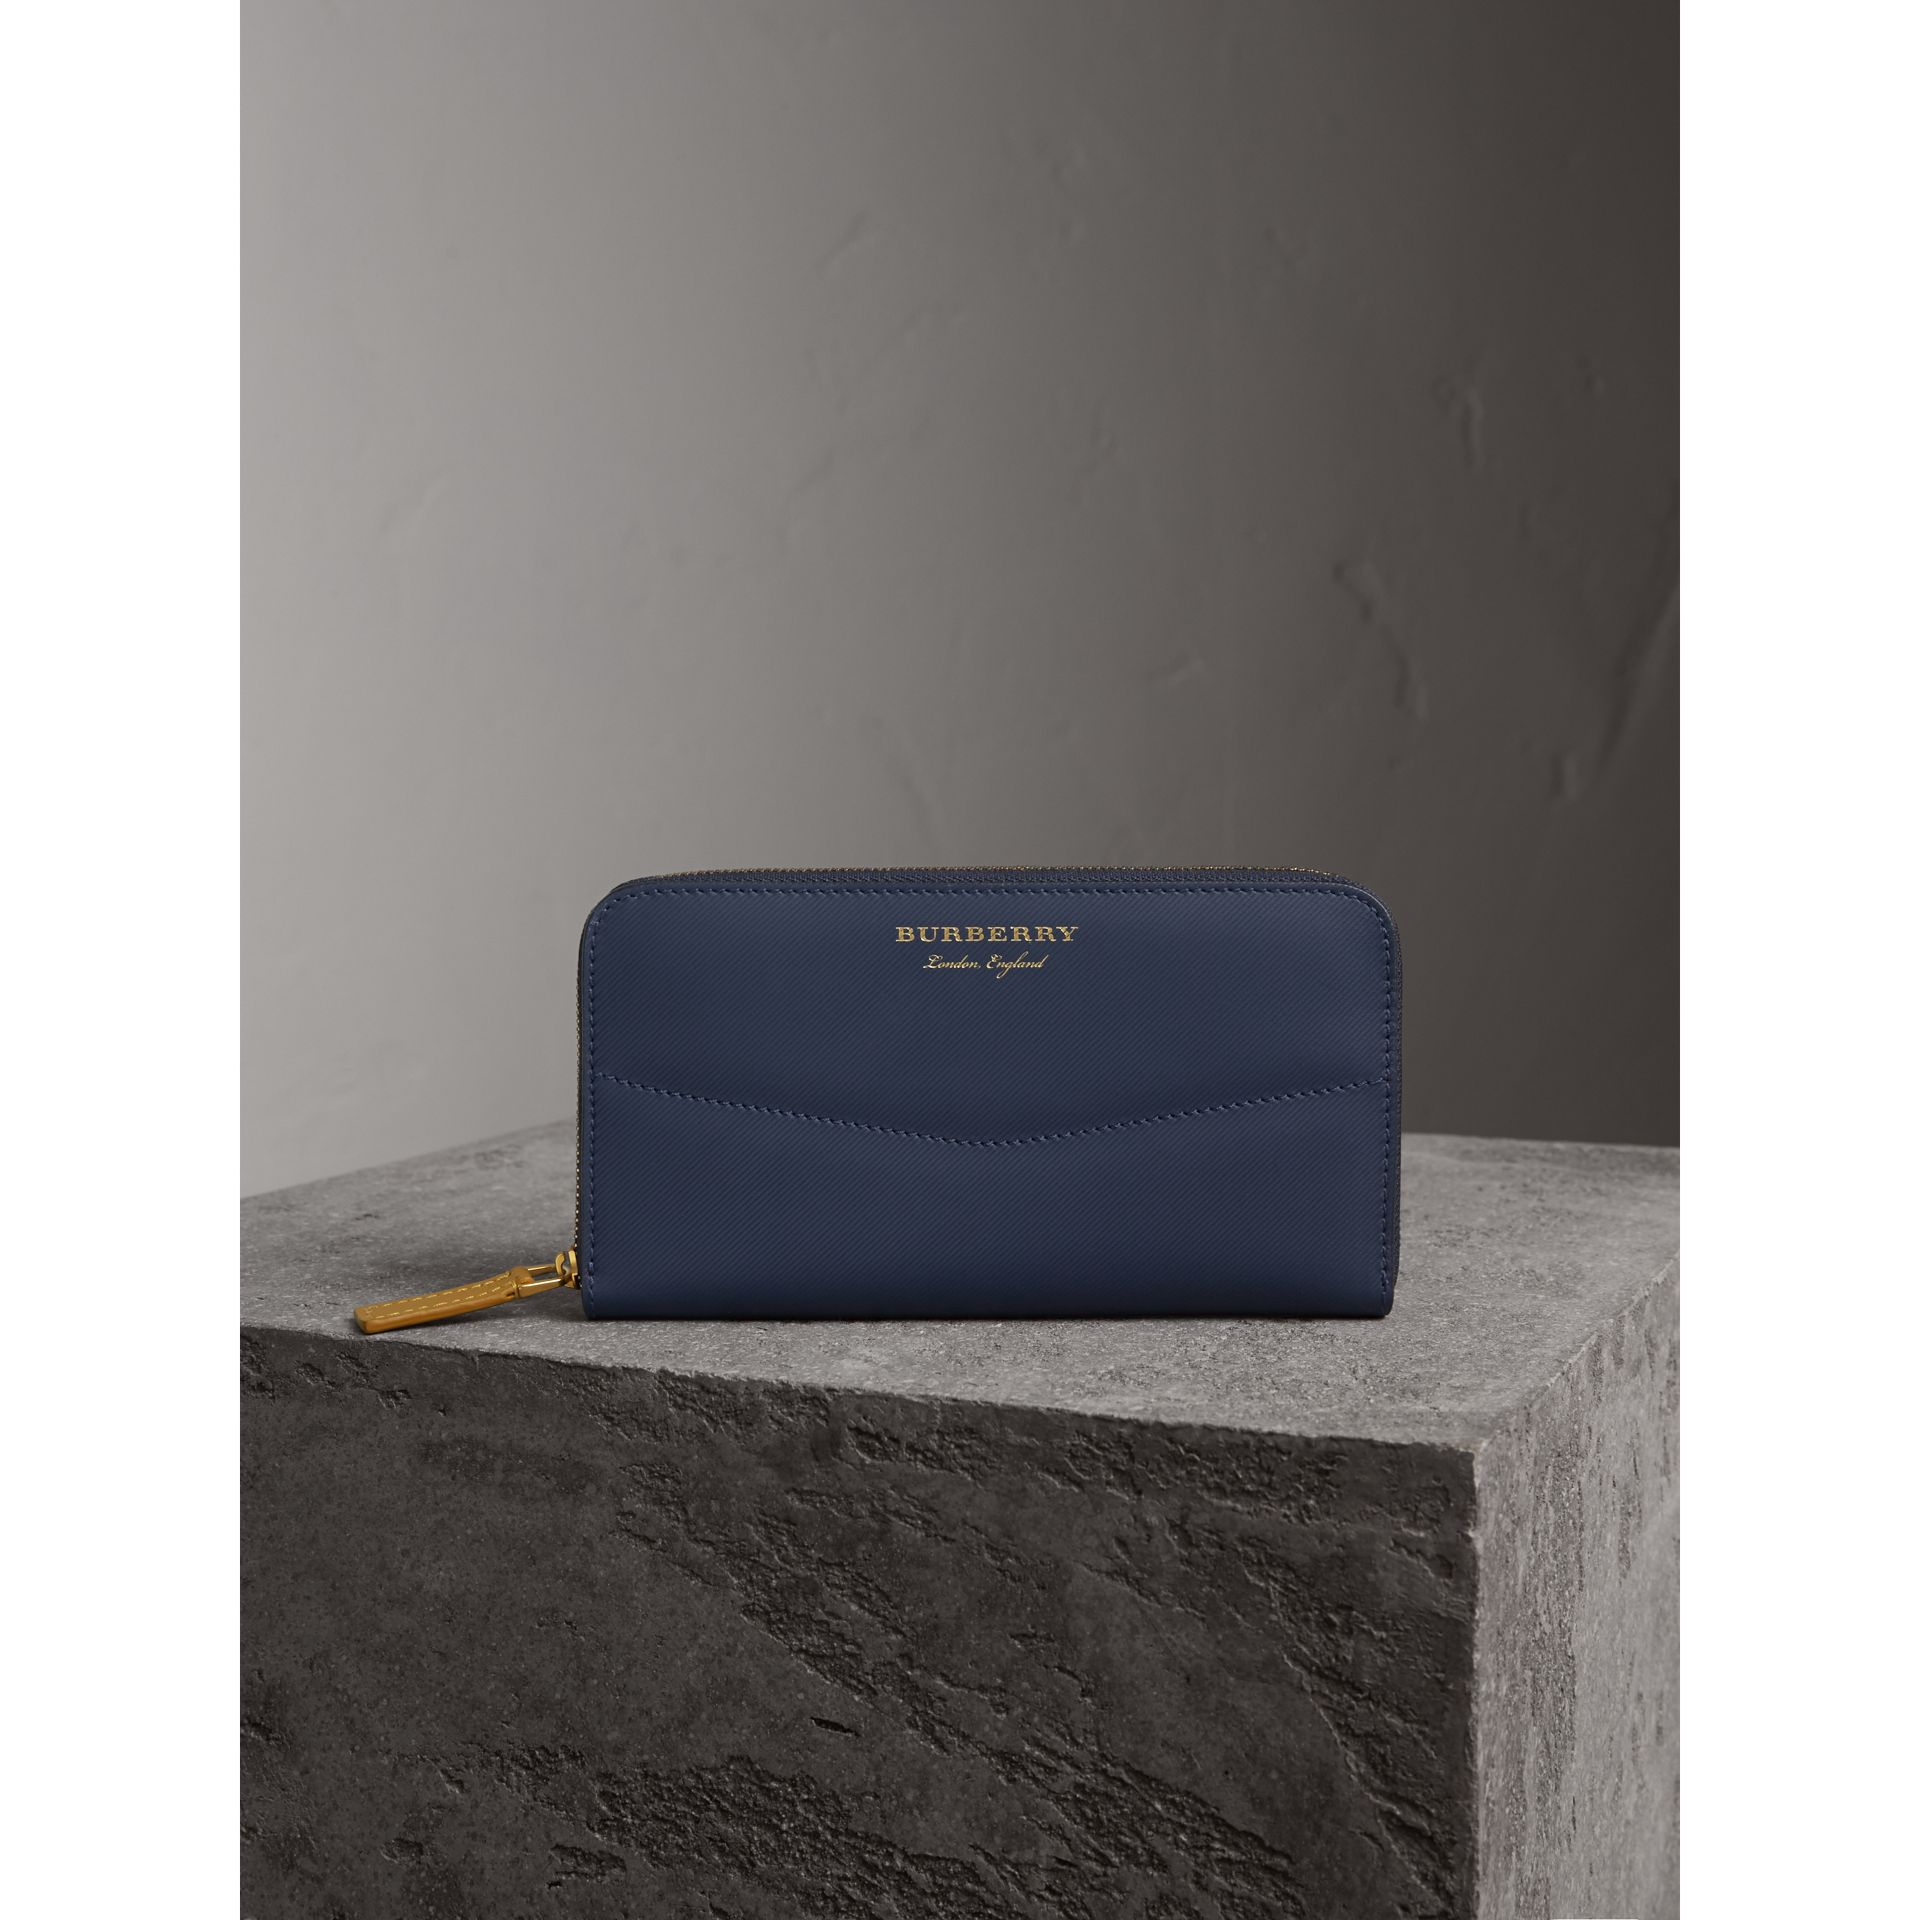 Two-tone Trench Leather Ziparound Wallet in Ink Blue/ochre Yellow - Women | Burberry - gallery image 6